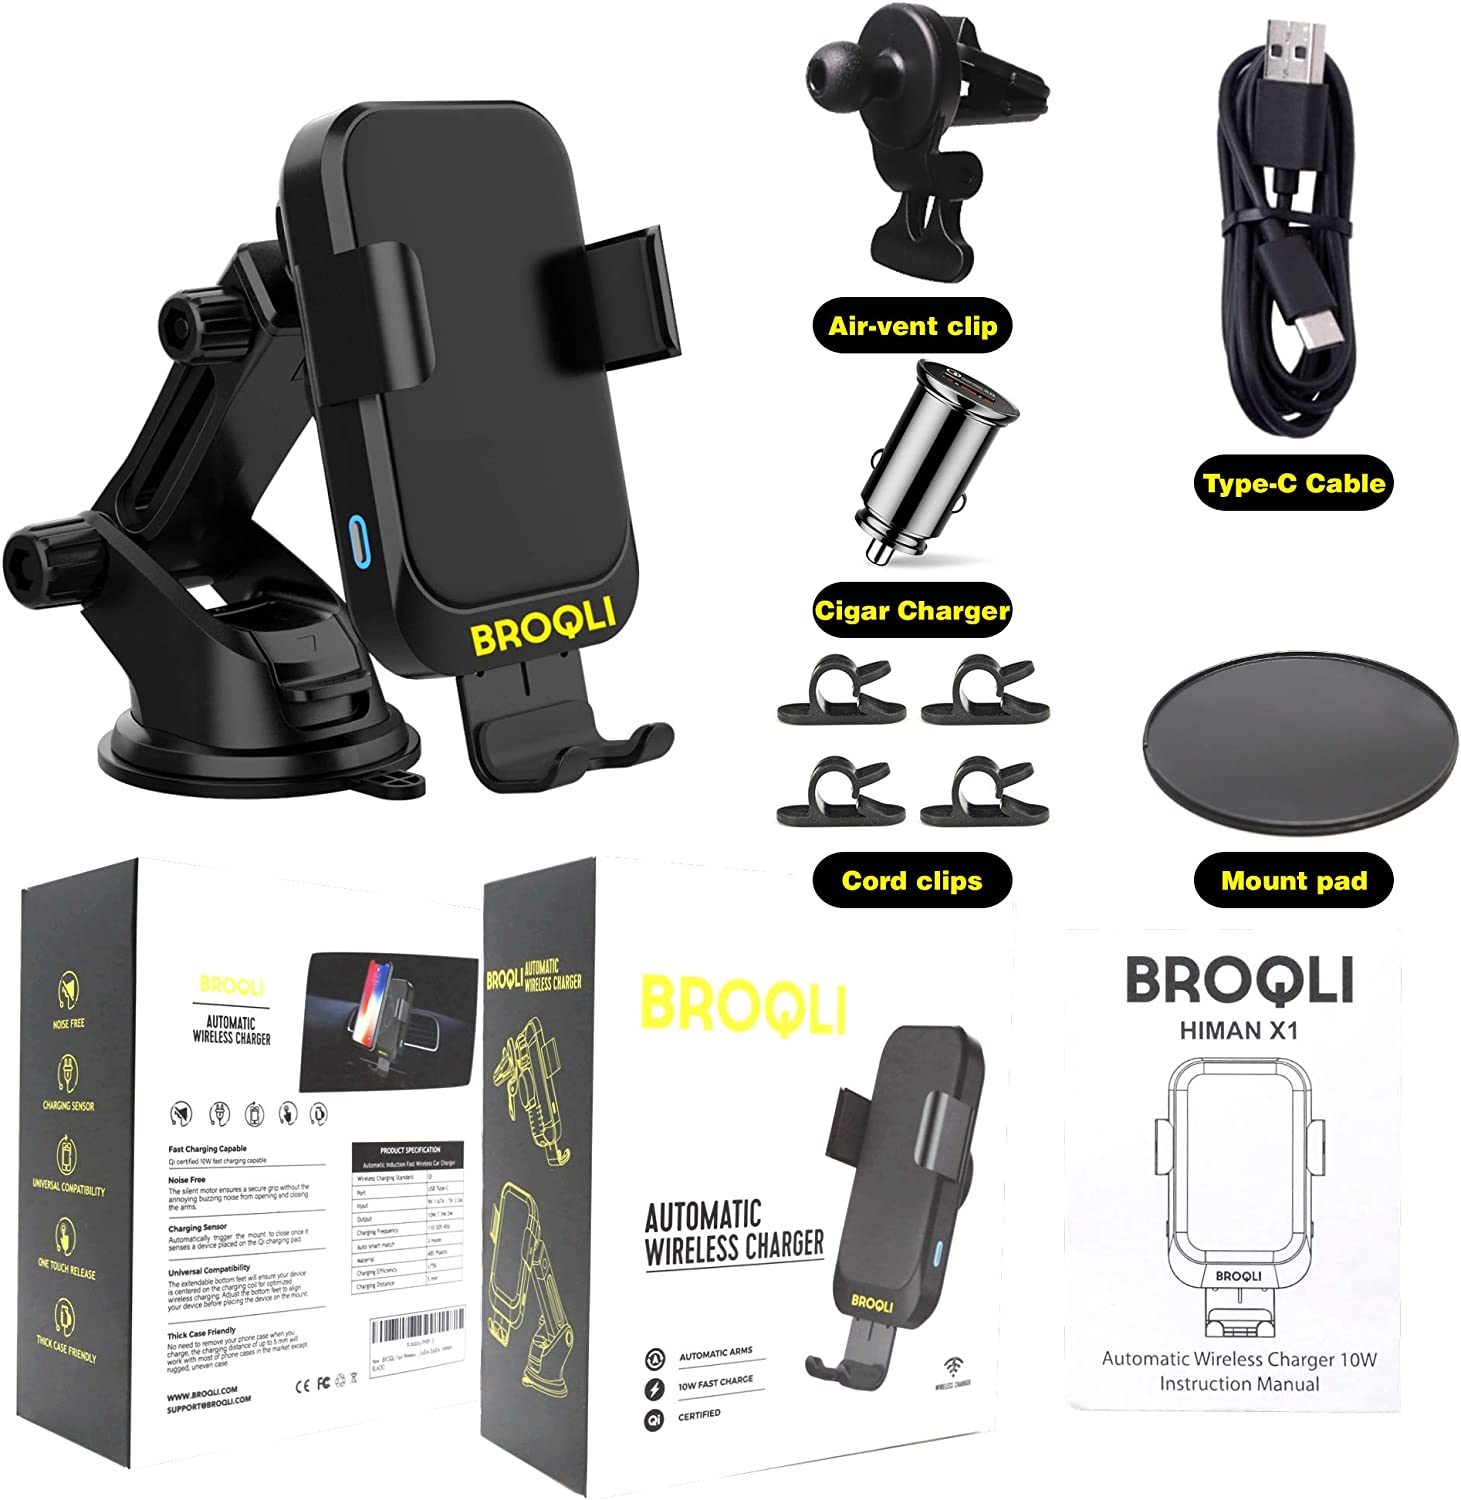 HIMAN Black One Touch Automatic Clamping Qi Cell Phone 10W Power Charging Air Vent Dashboard Holder iPhone X//Xs Max//XR//8//8+,Galaxy S10//S10+//S9//S9+//S8//S8+ BROQLI Fast Wireless Car Charger Mount Kit